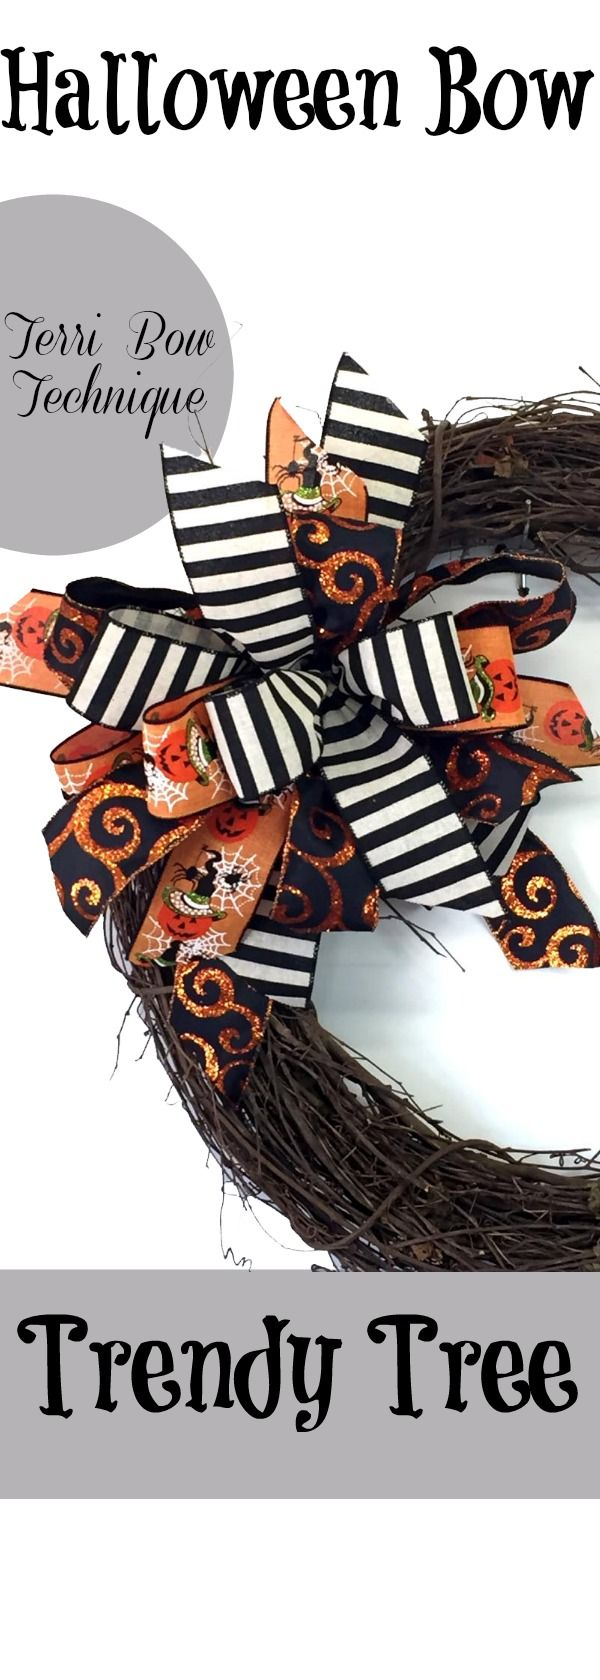 2017 Halloween bow using the Terri Bow technique and the Pro Bow bowmaker. We used scrap ribbon for this project, but the styles are still in stock here at